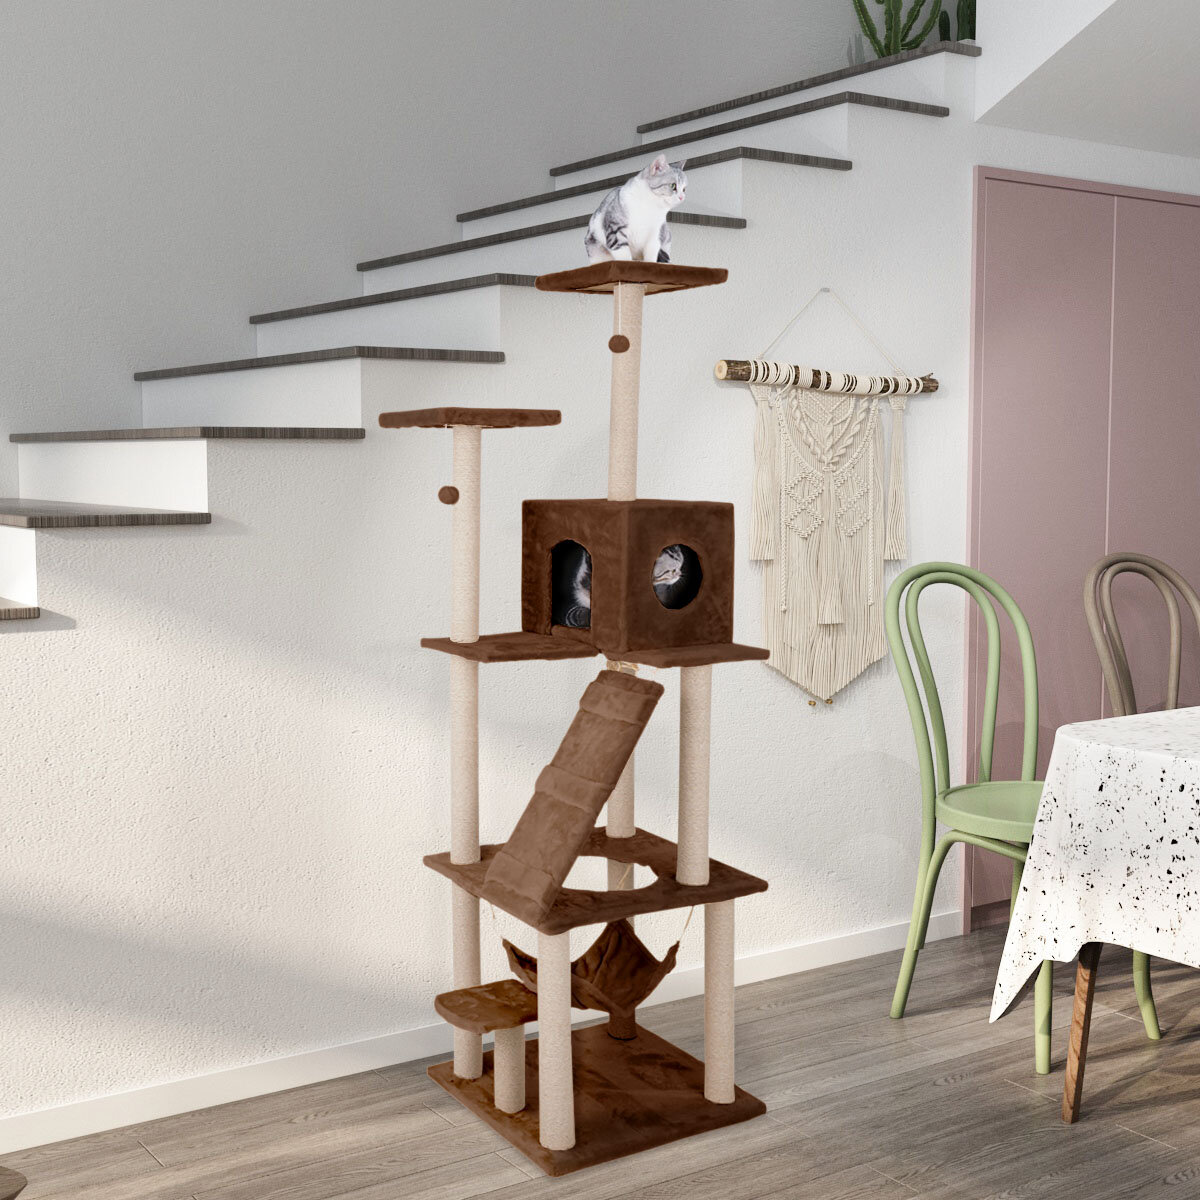 5 Level Hanging Cat Trees Condos You Ll Love In 2021 Wayfair